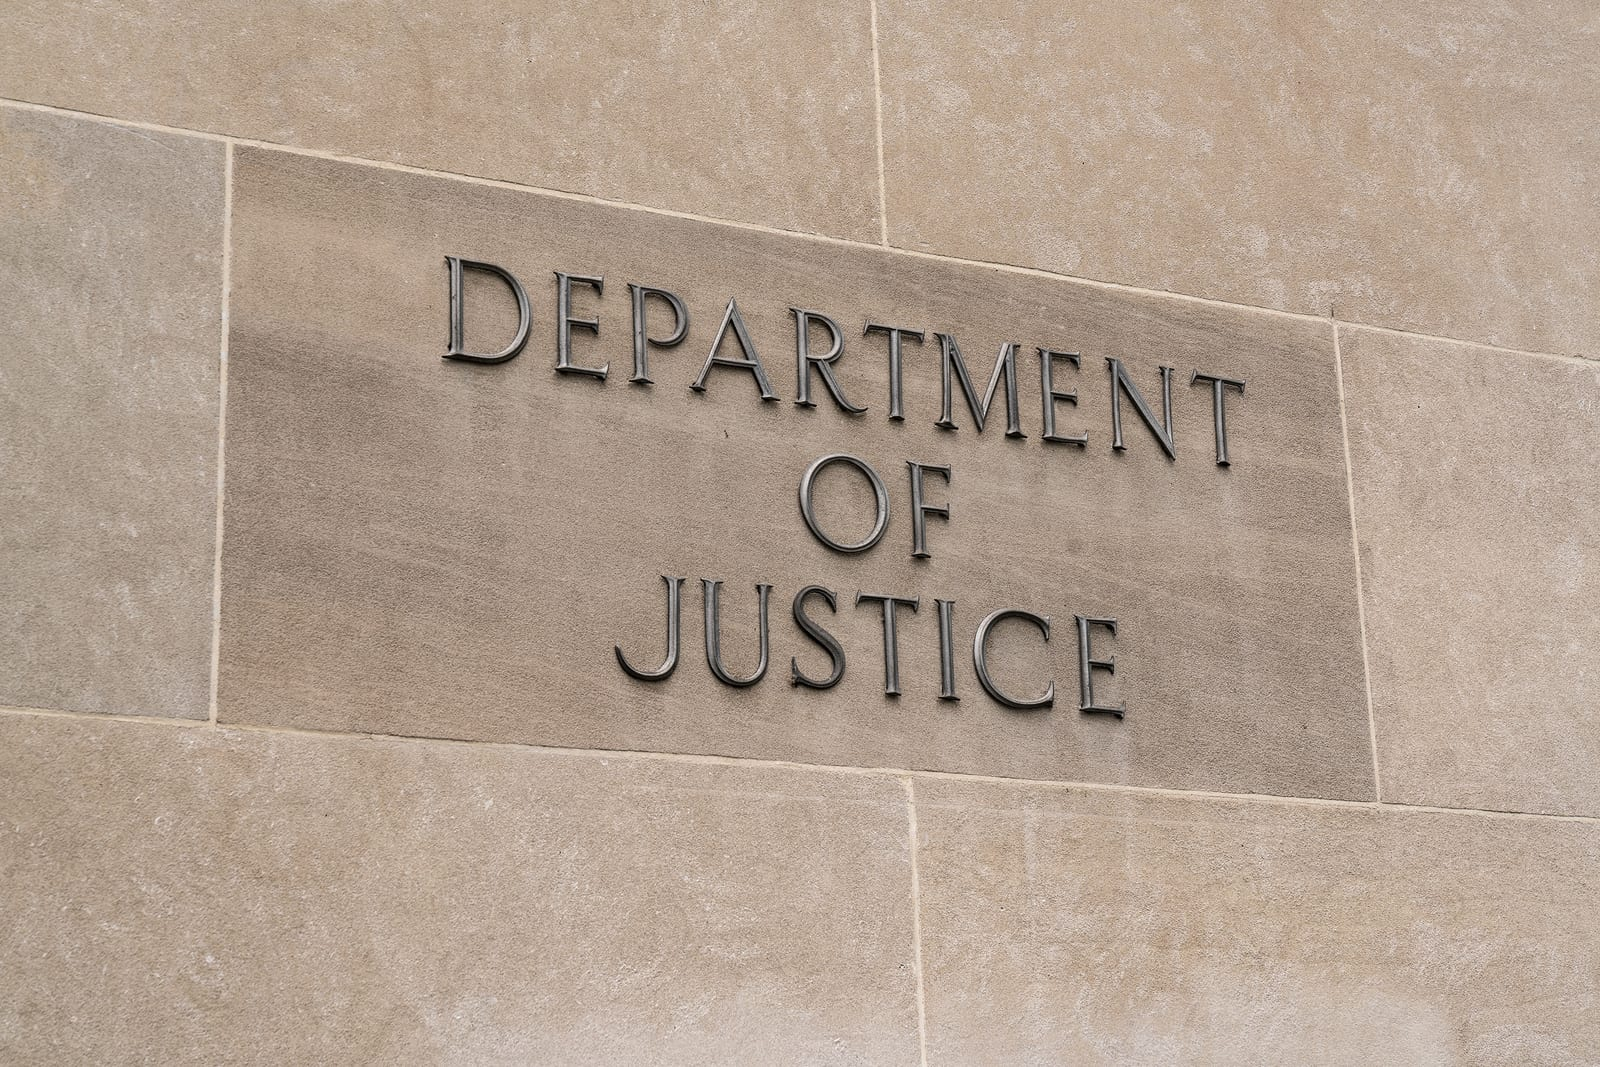 Maryland News: Baltimore, Five Plead Guilty in October to Federal Charges Related to a Violent Drug Distribution Organization